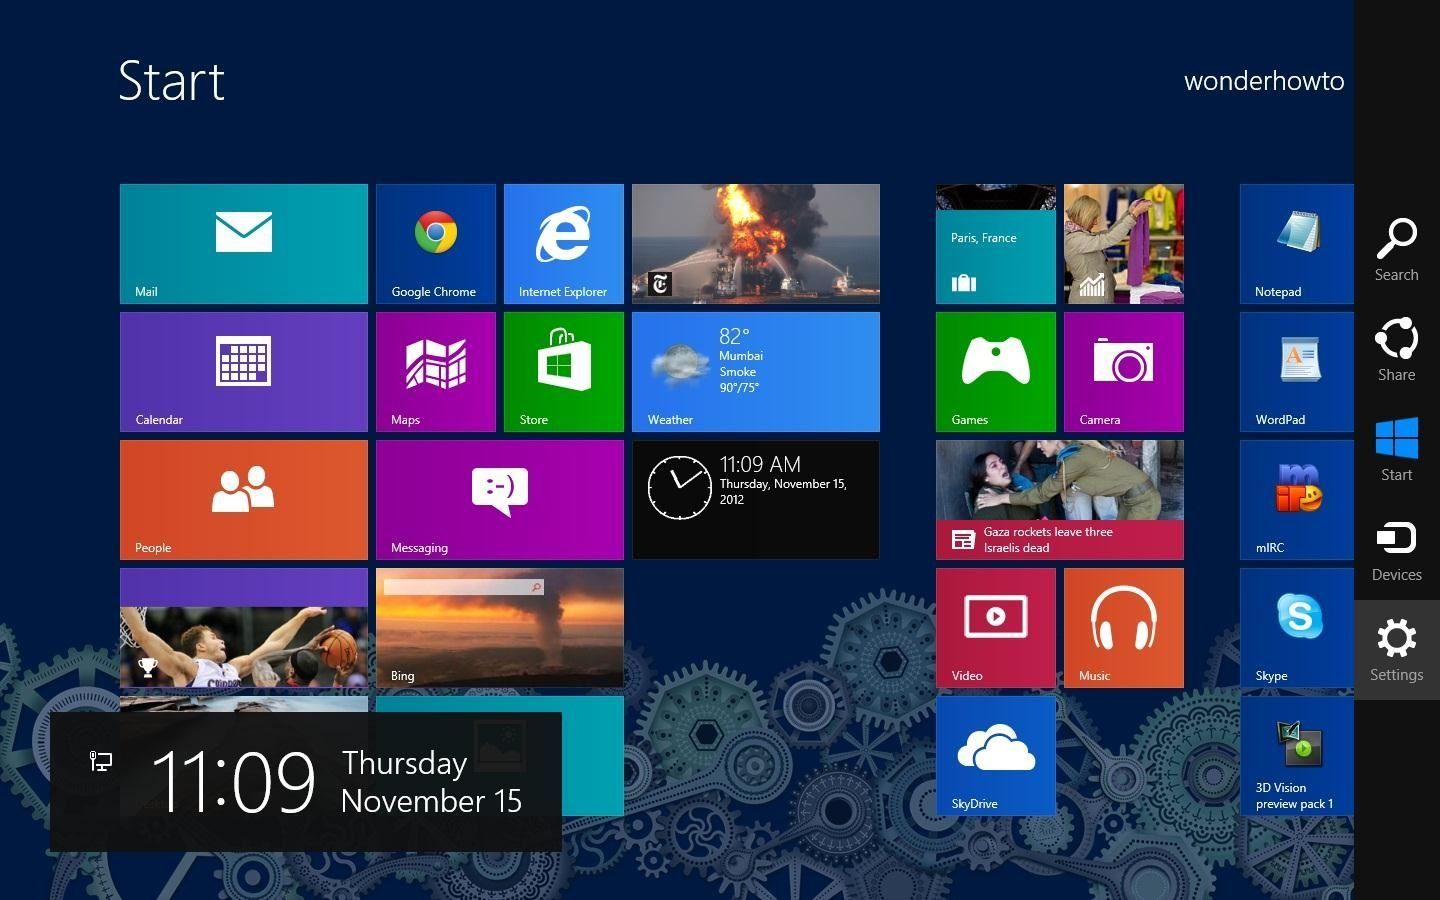 Missing Time in Windows 8 Add a Live Tile Clock to Your 1440x900